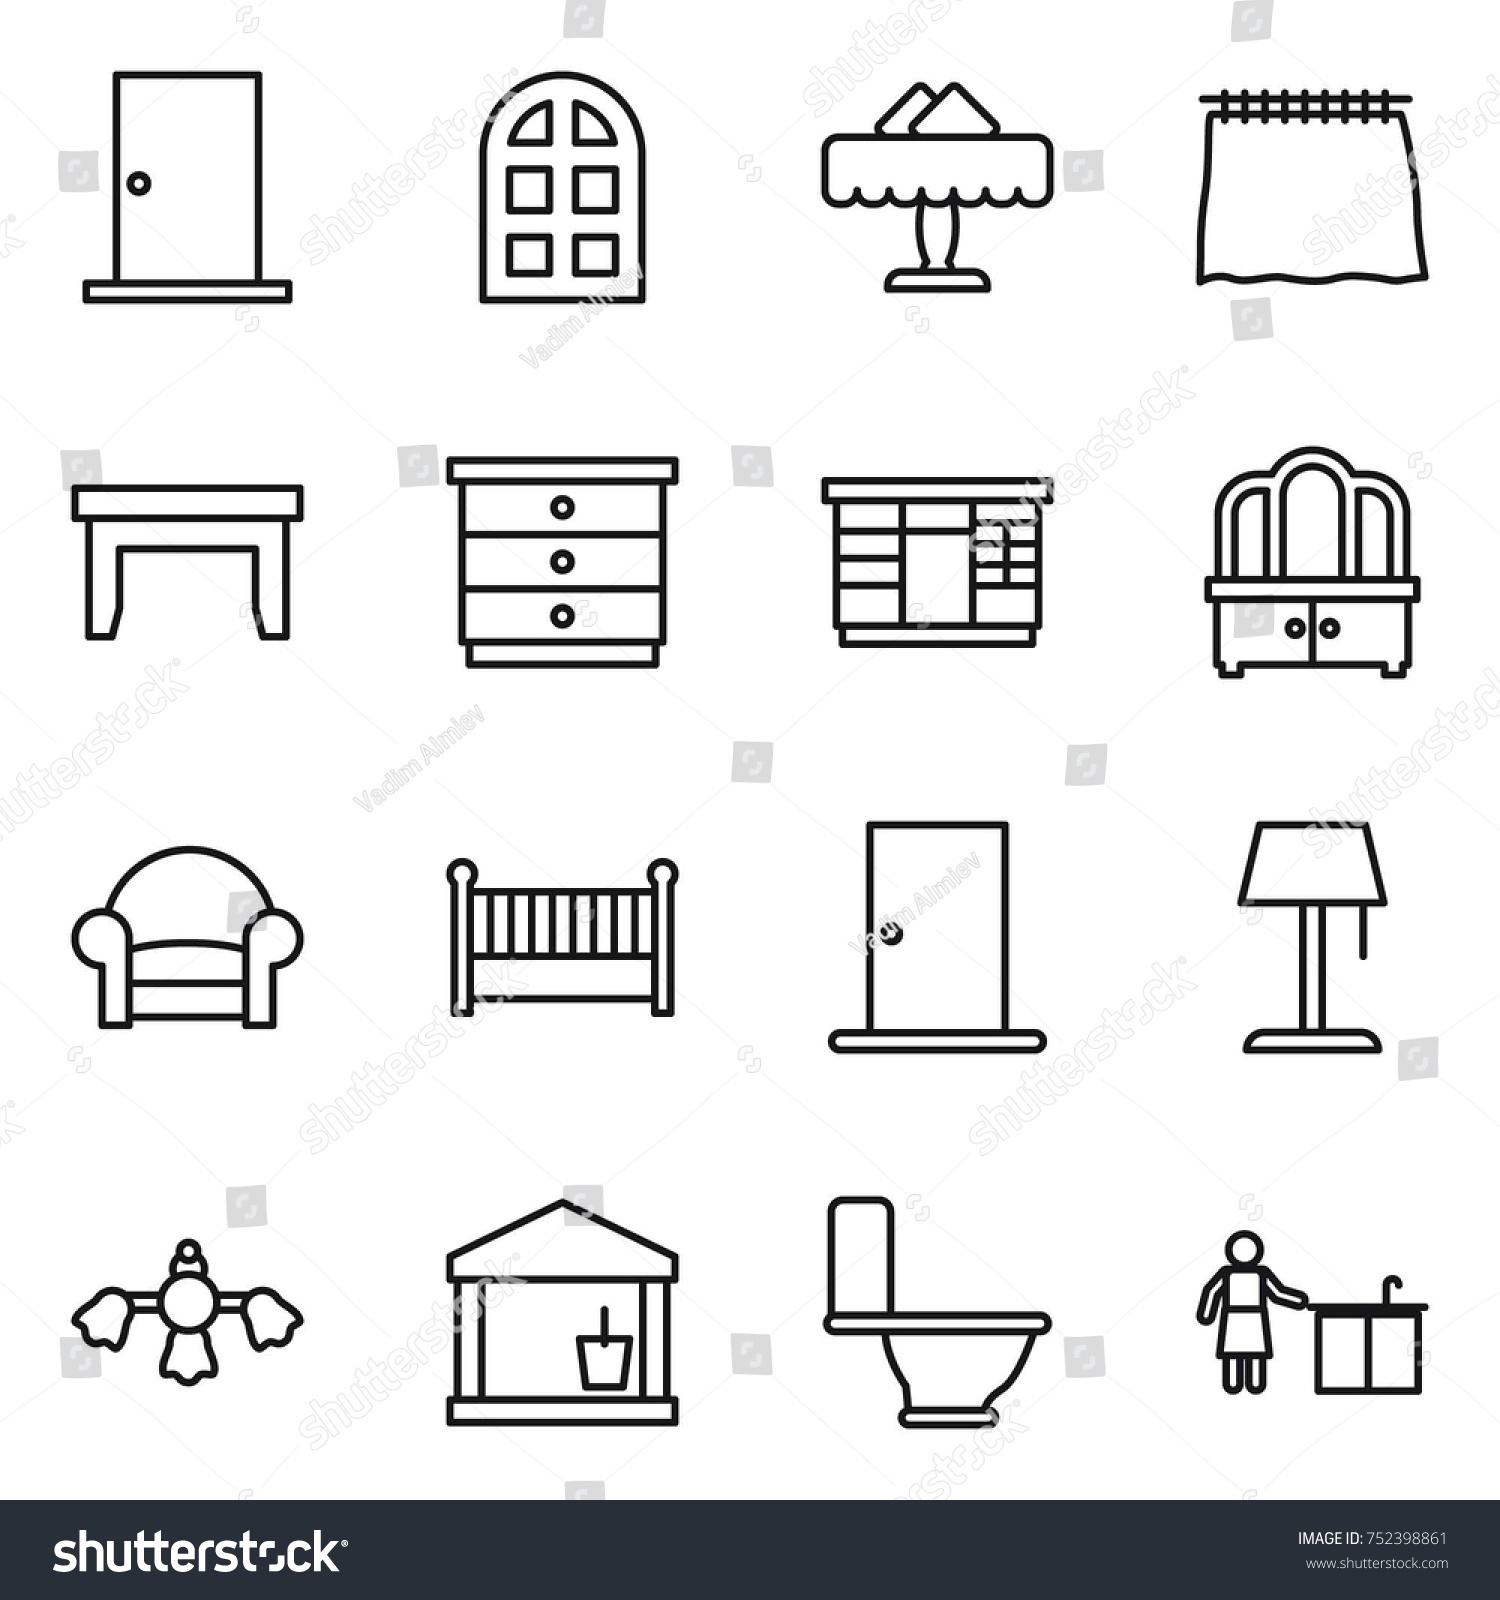 hight resolution of thin line icon set door arch window restaurant curtain table